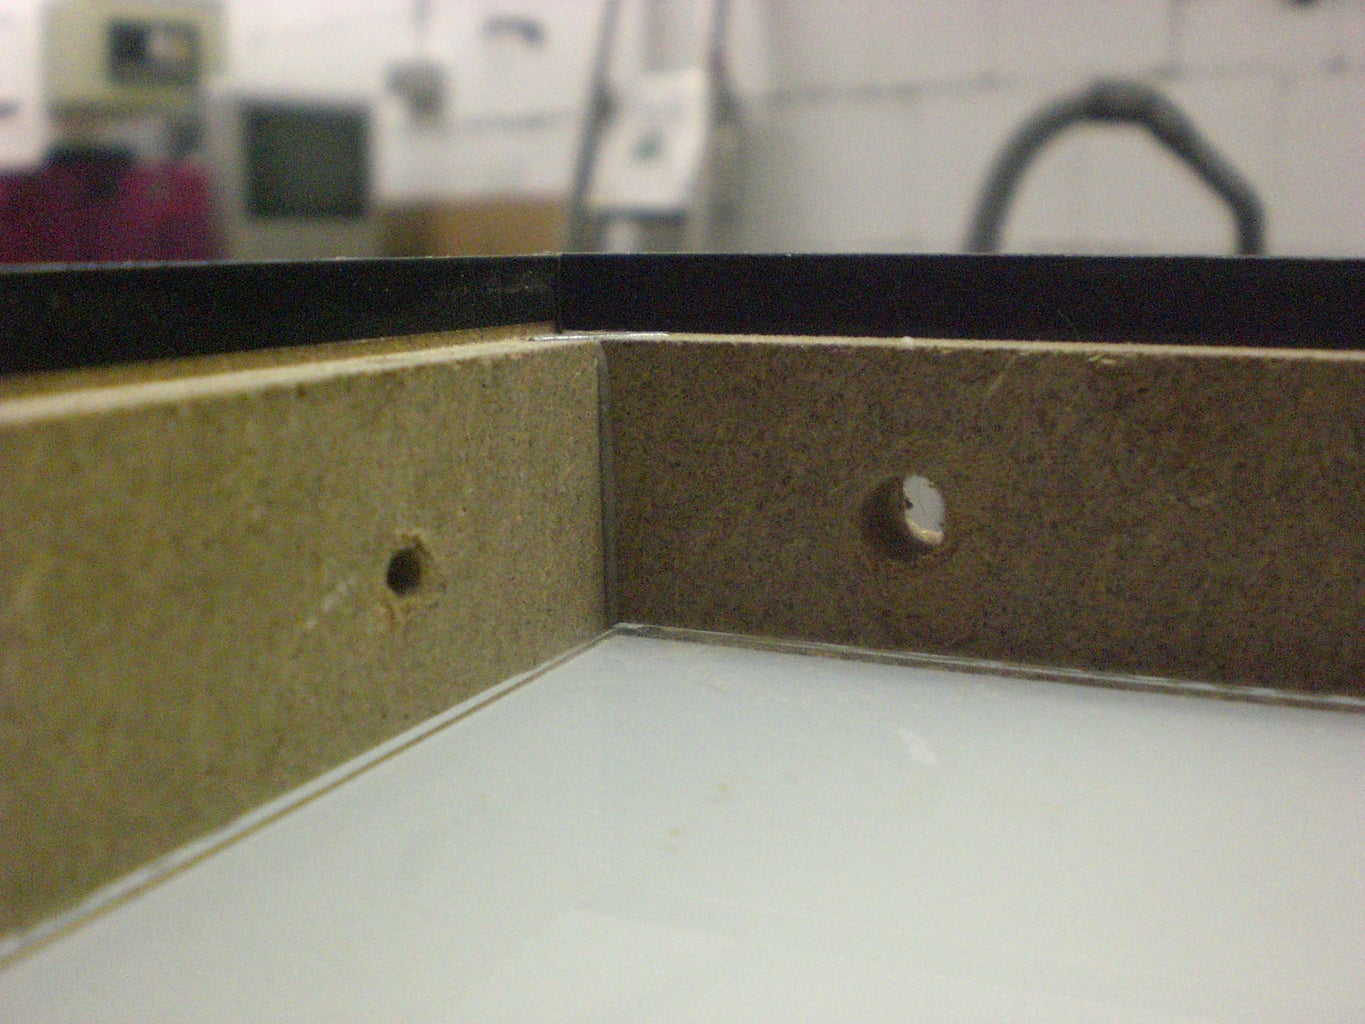 Make Holes for the Switch and the Power-Cable